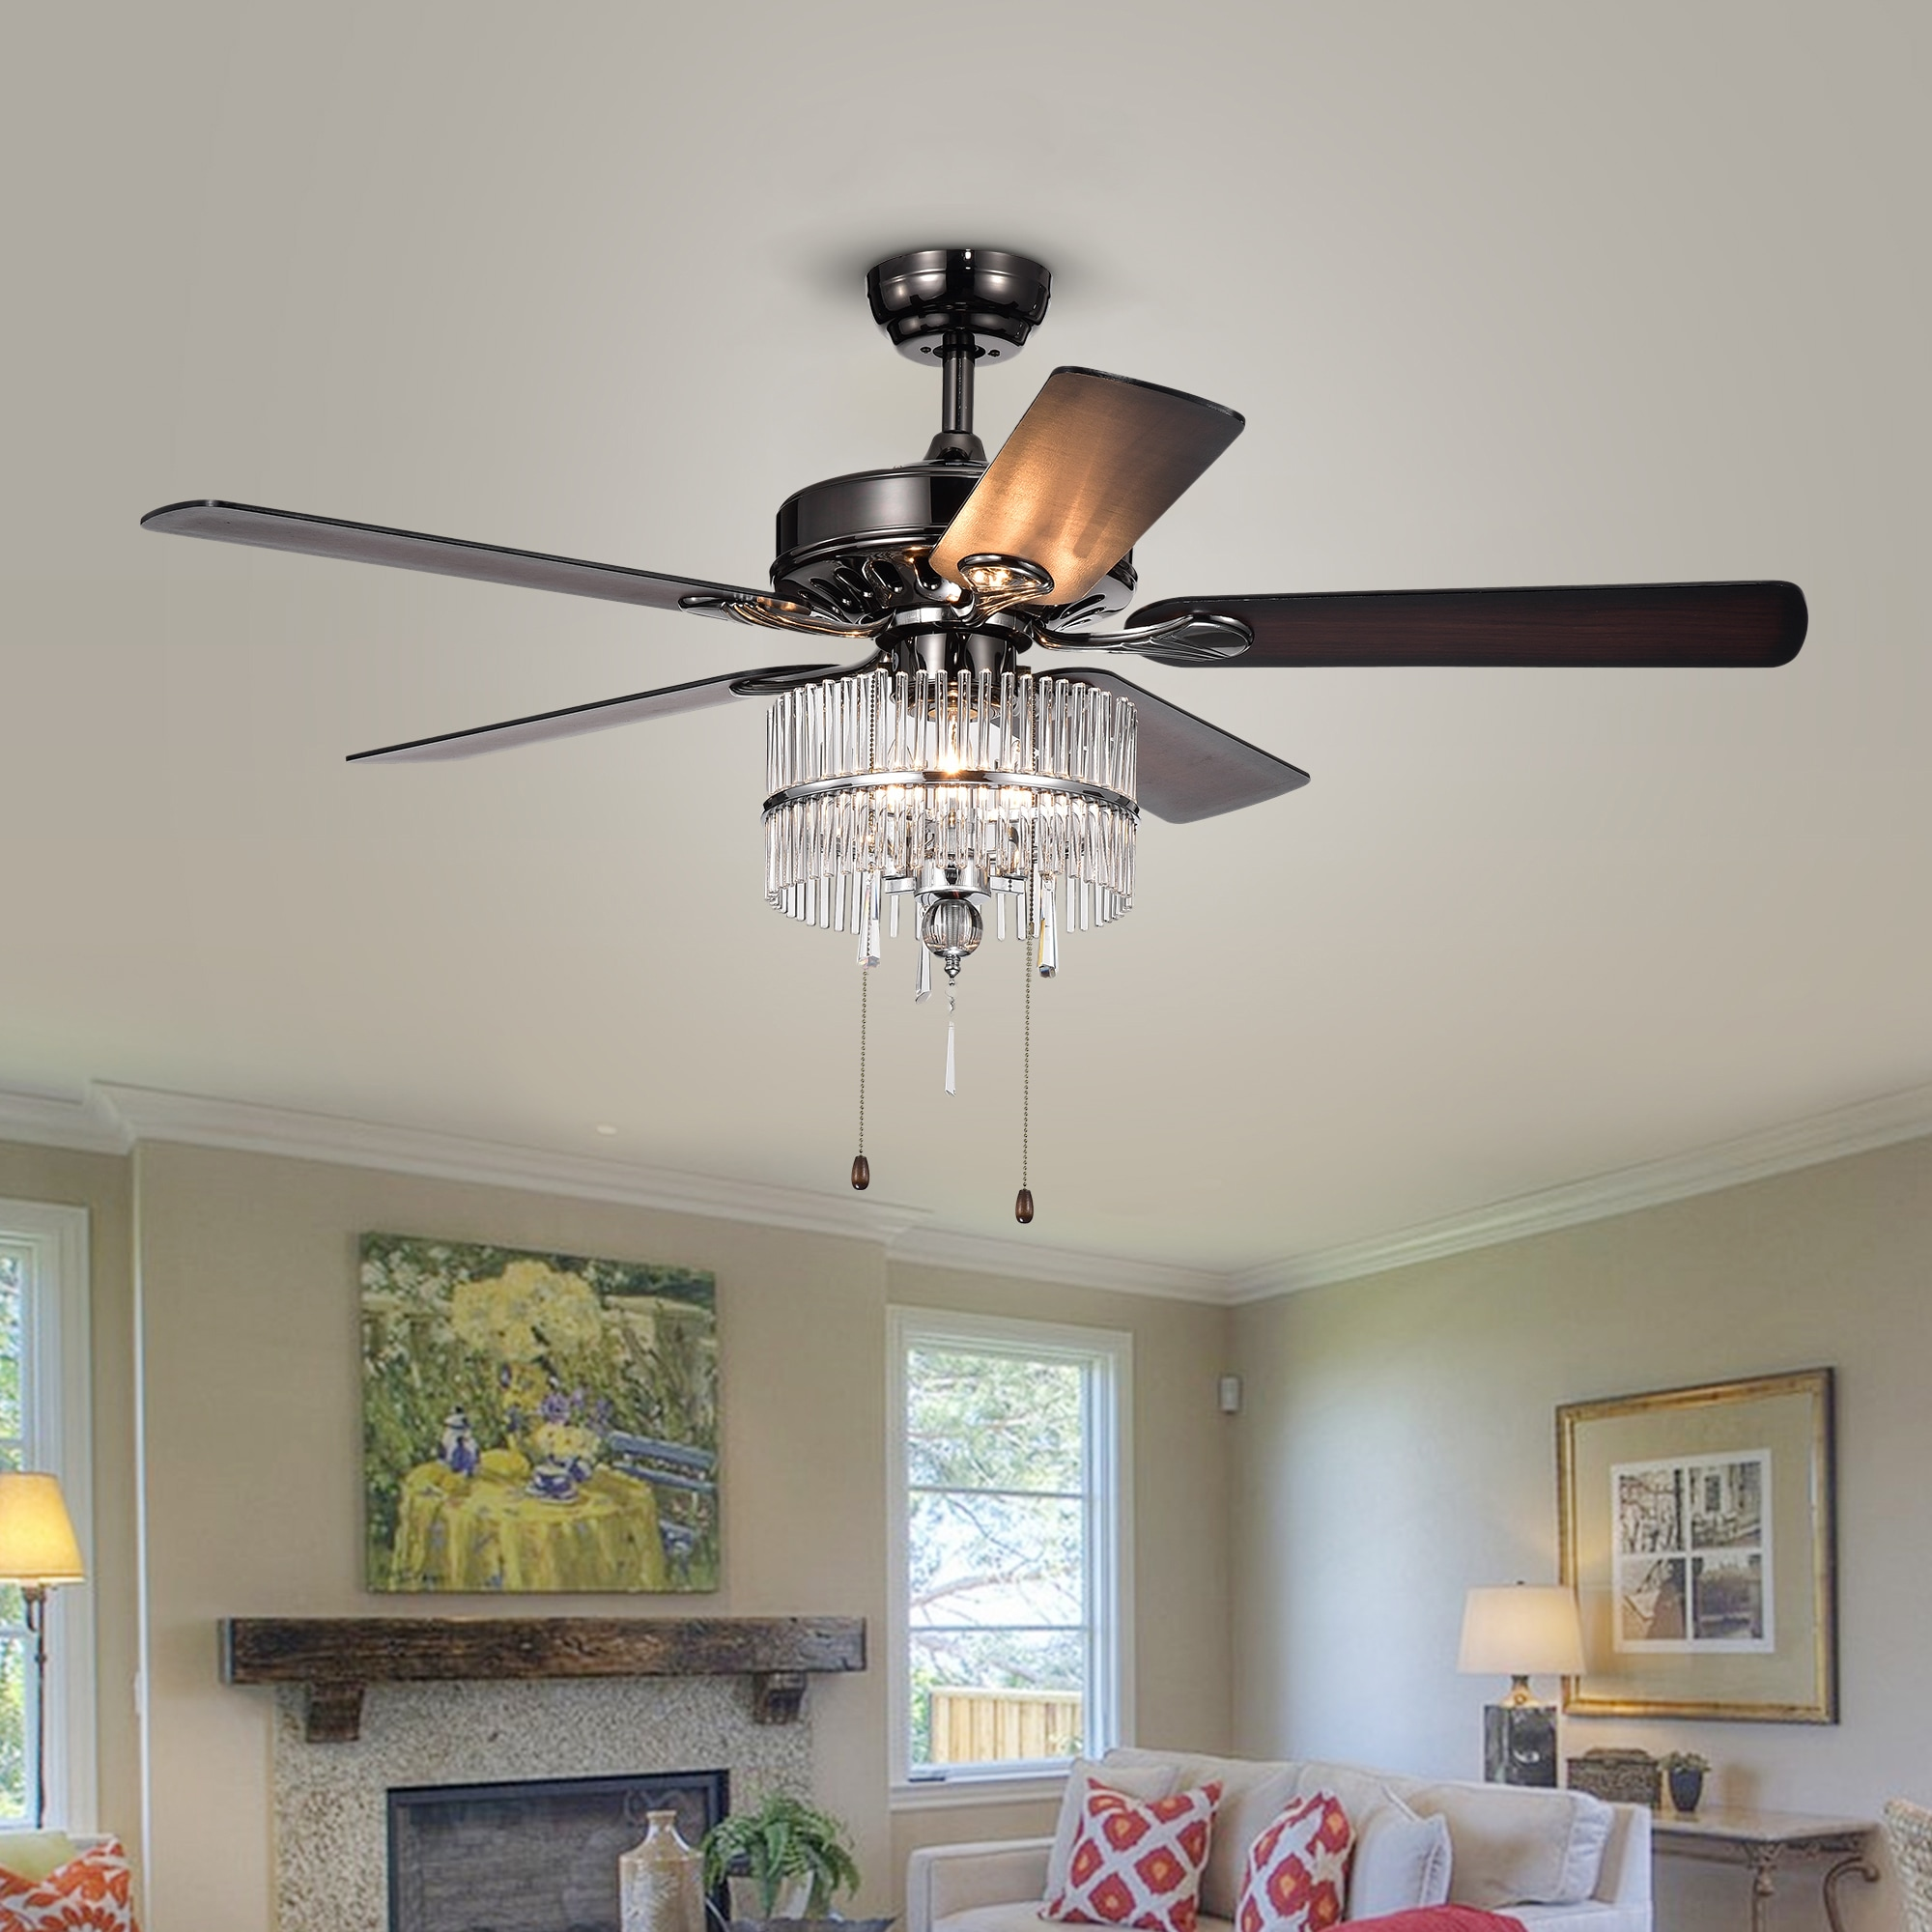 blade light lighting chandelier fan astoria wayfair ceiling aslan pdx grand with reviews bowl